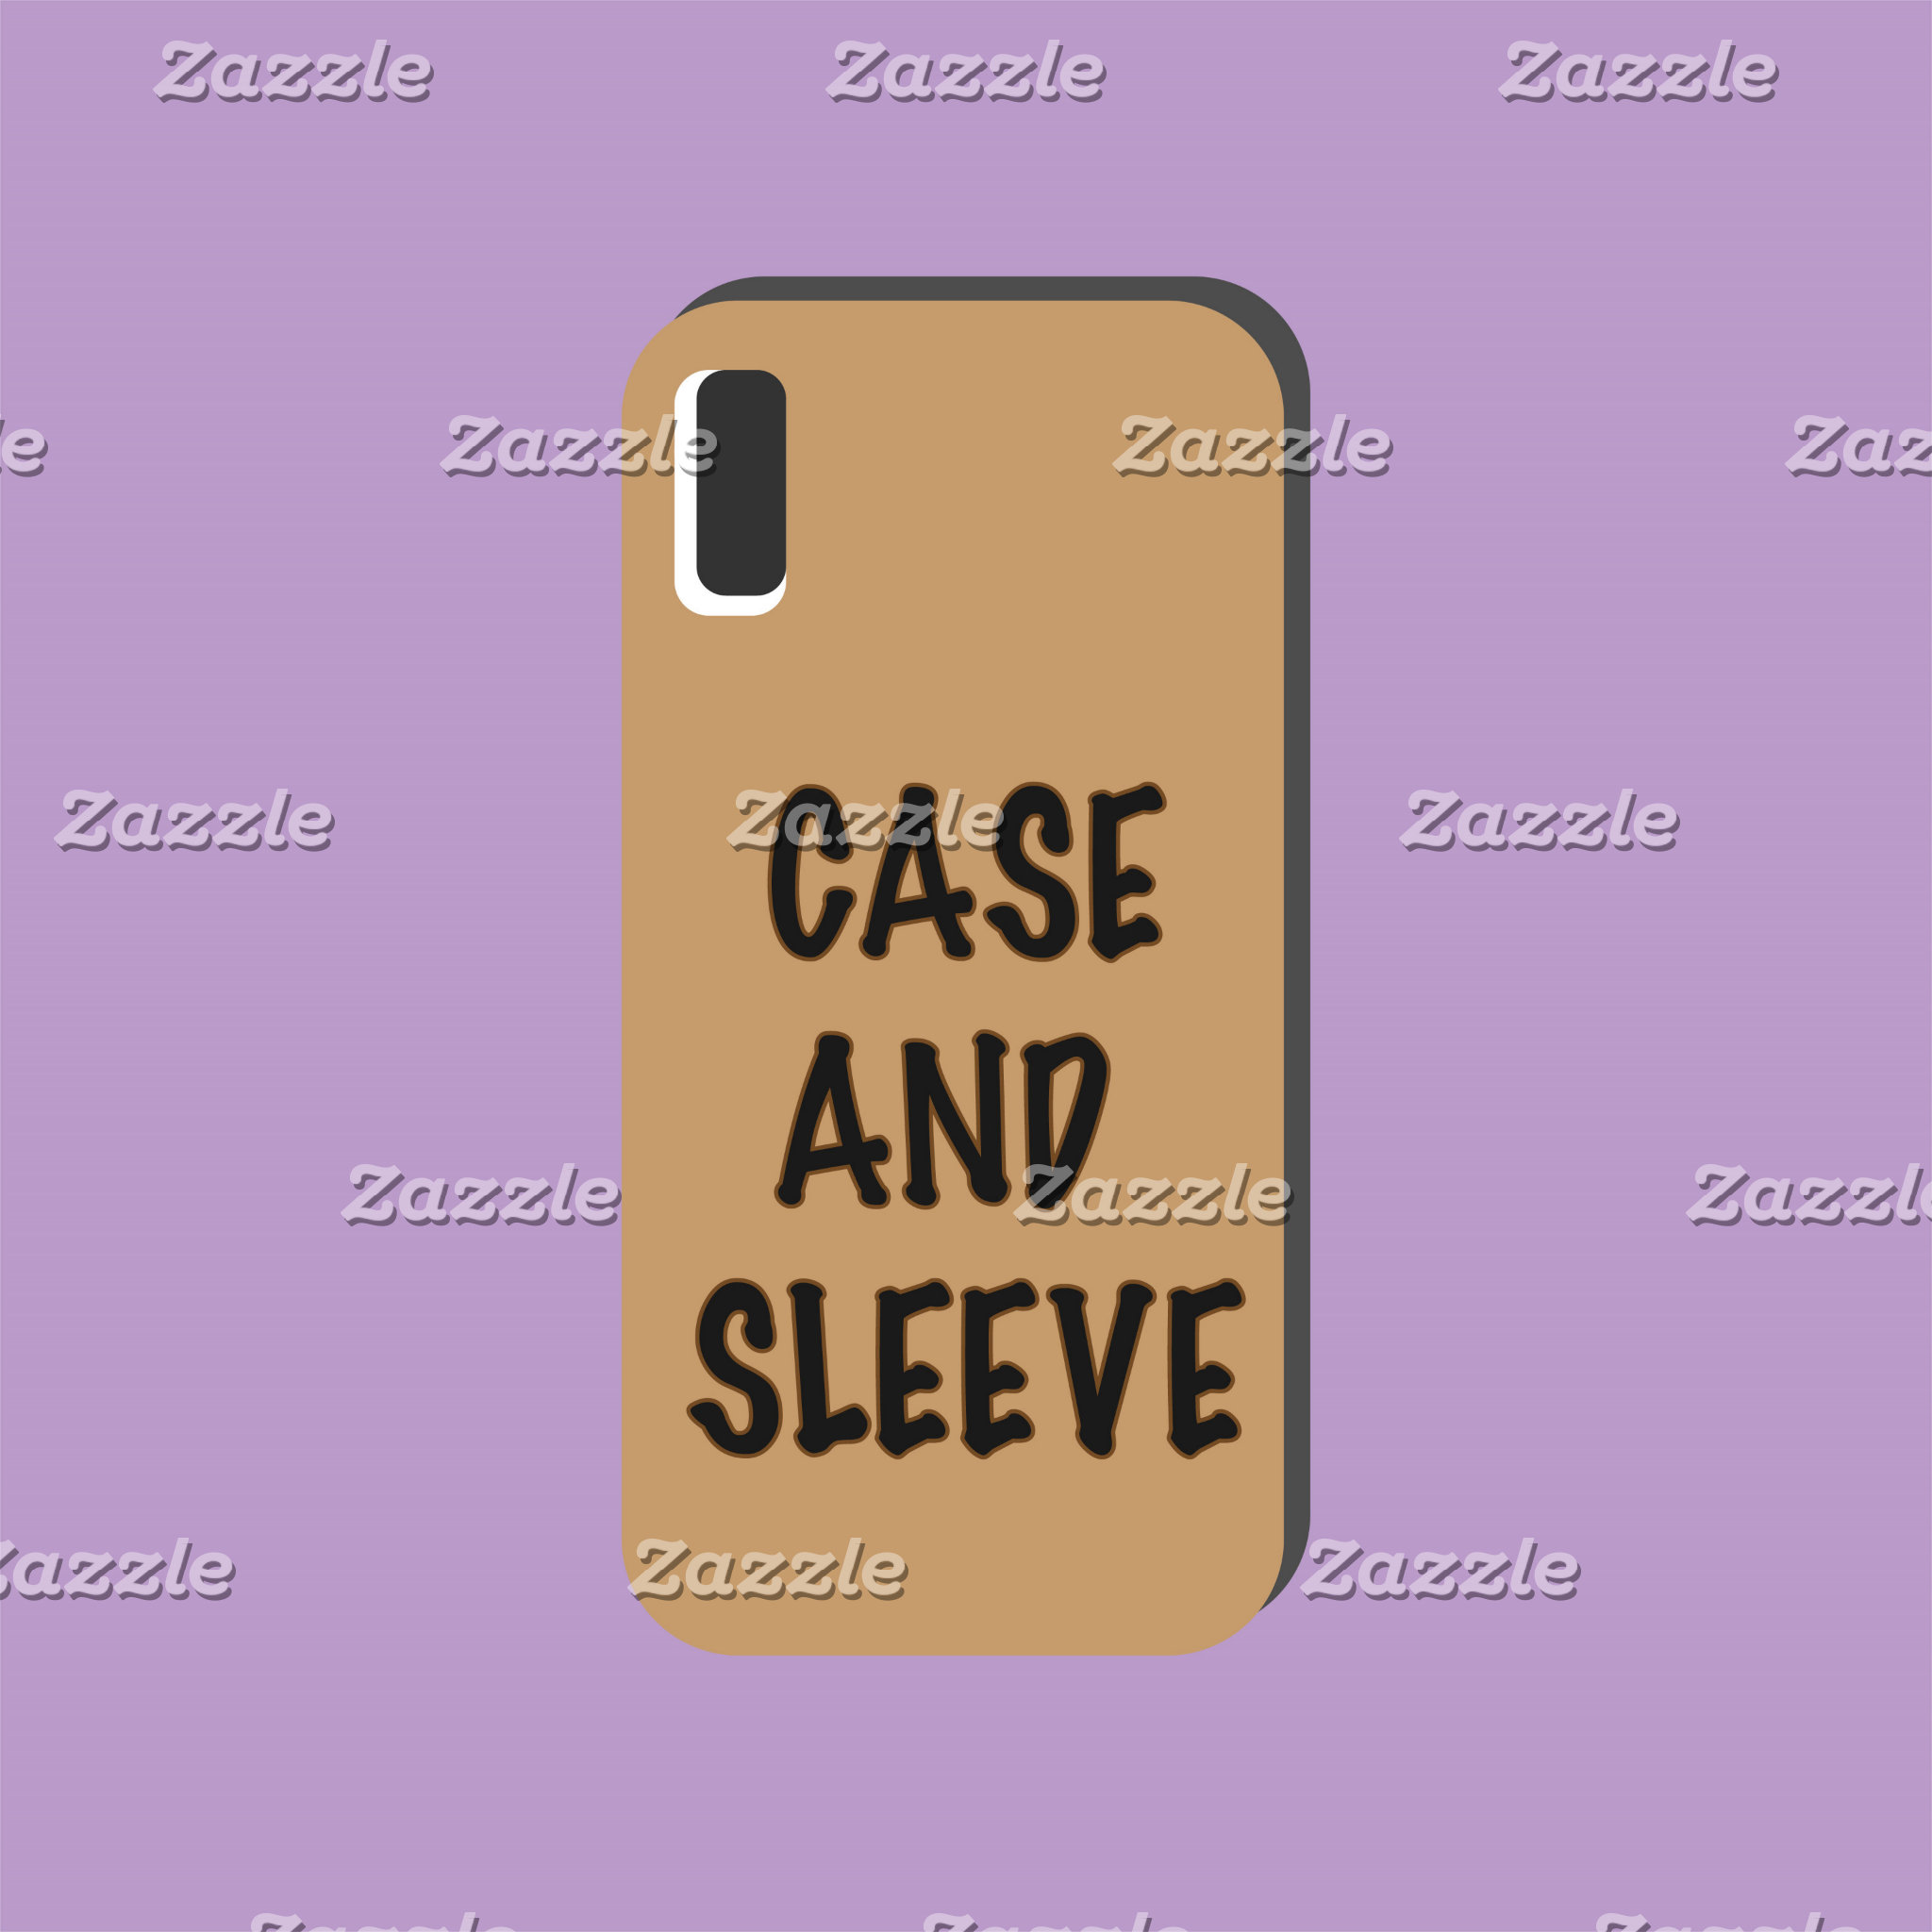 Phone Case and Sleeve